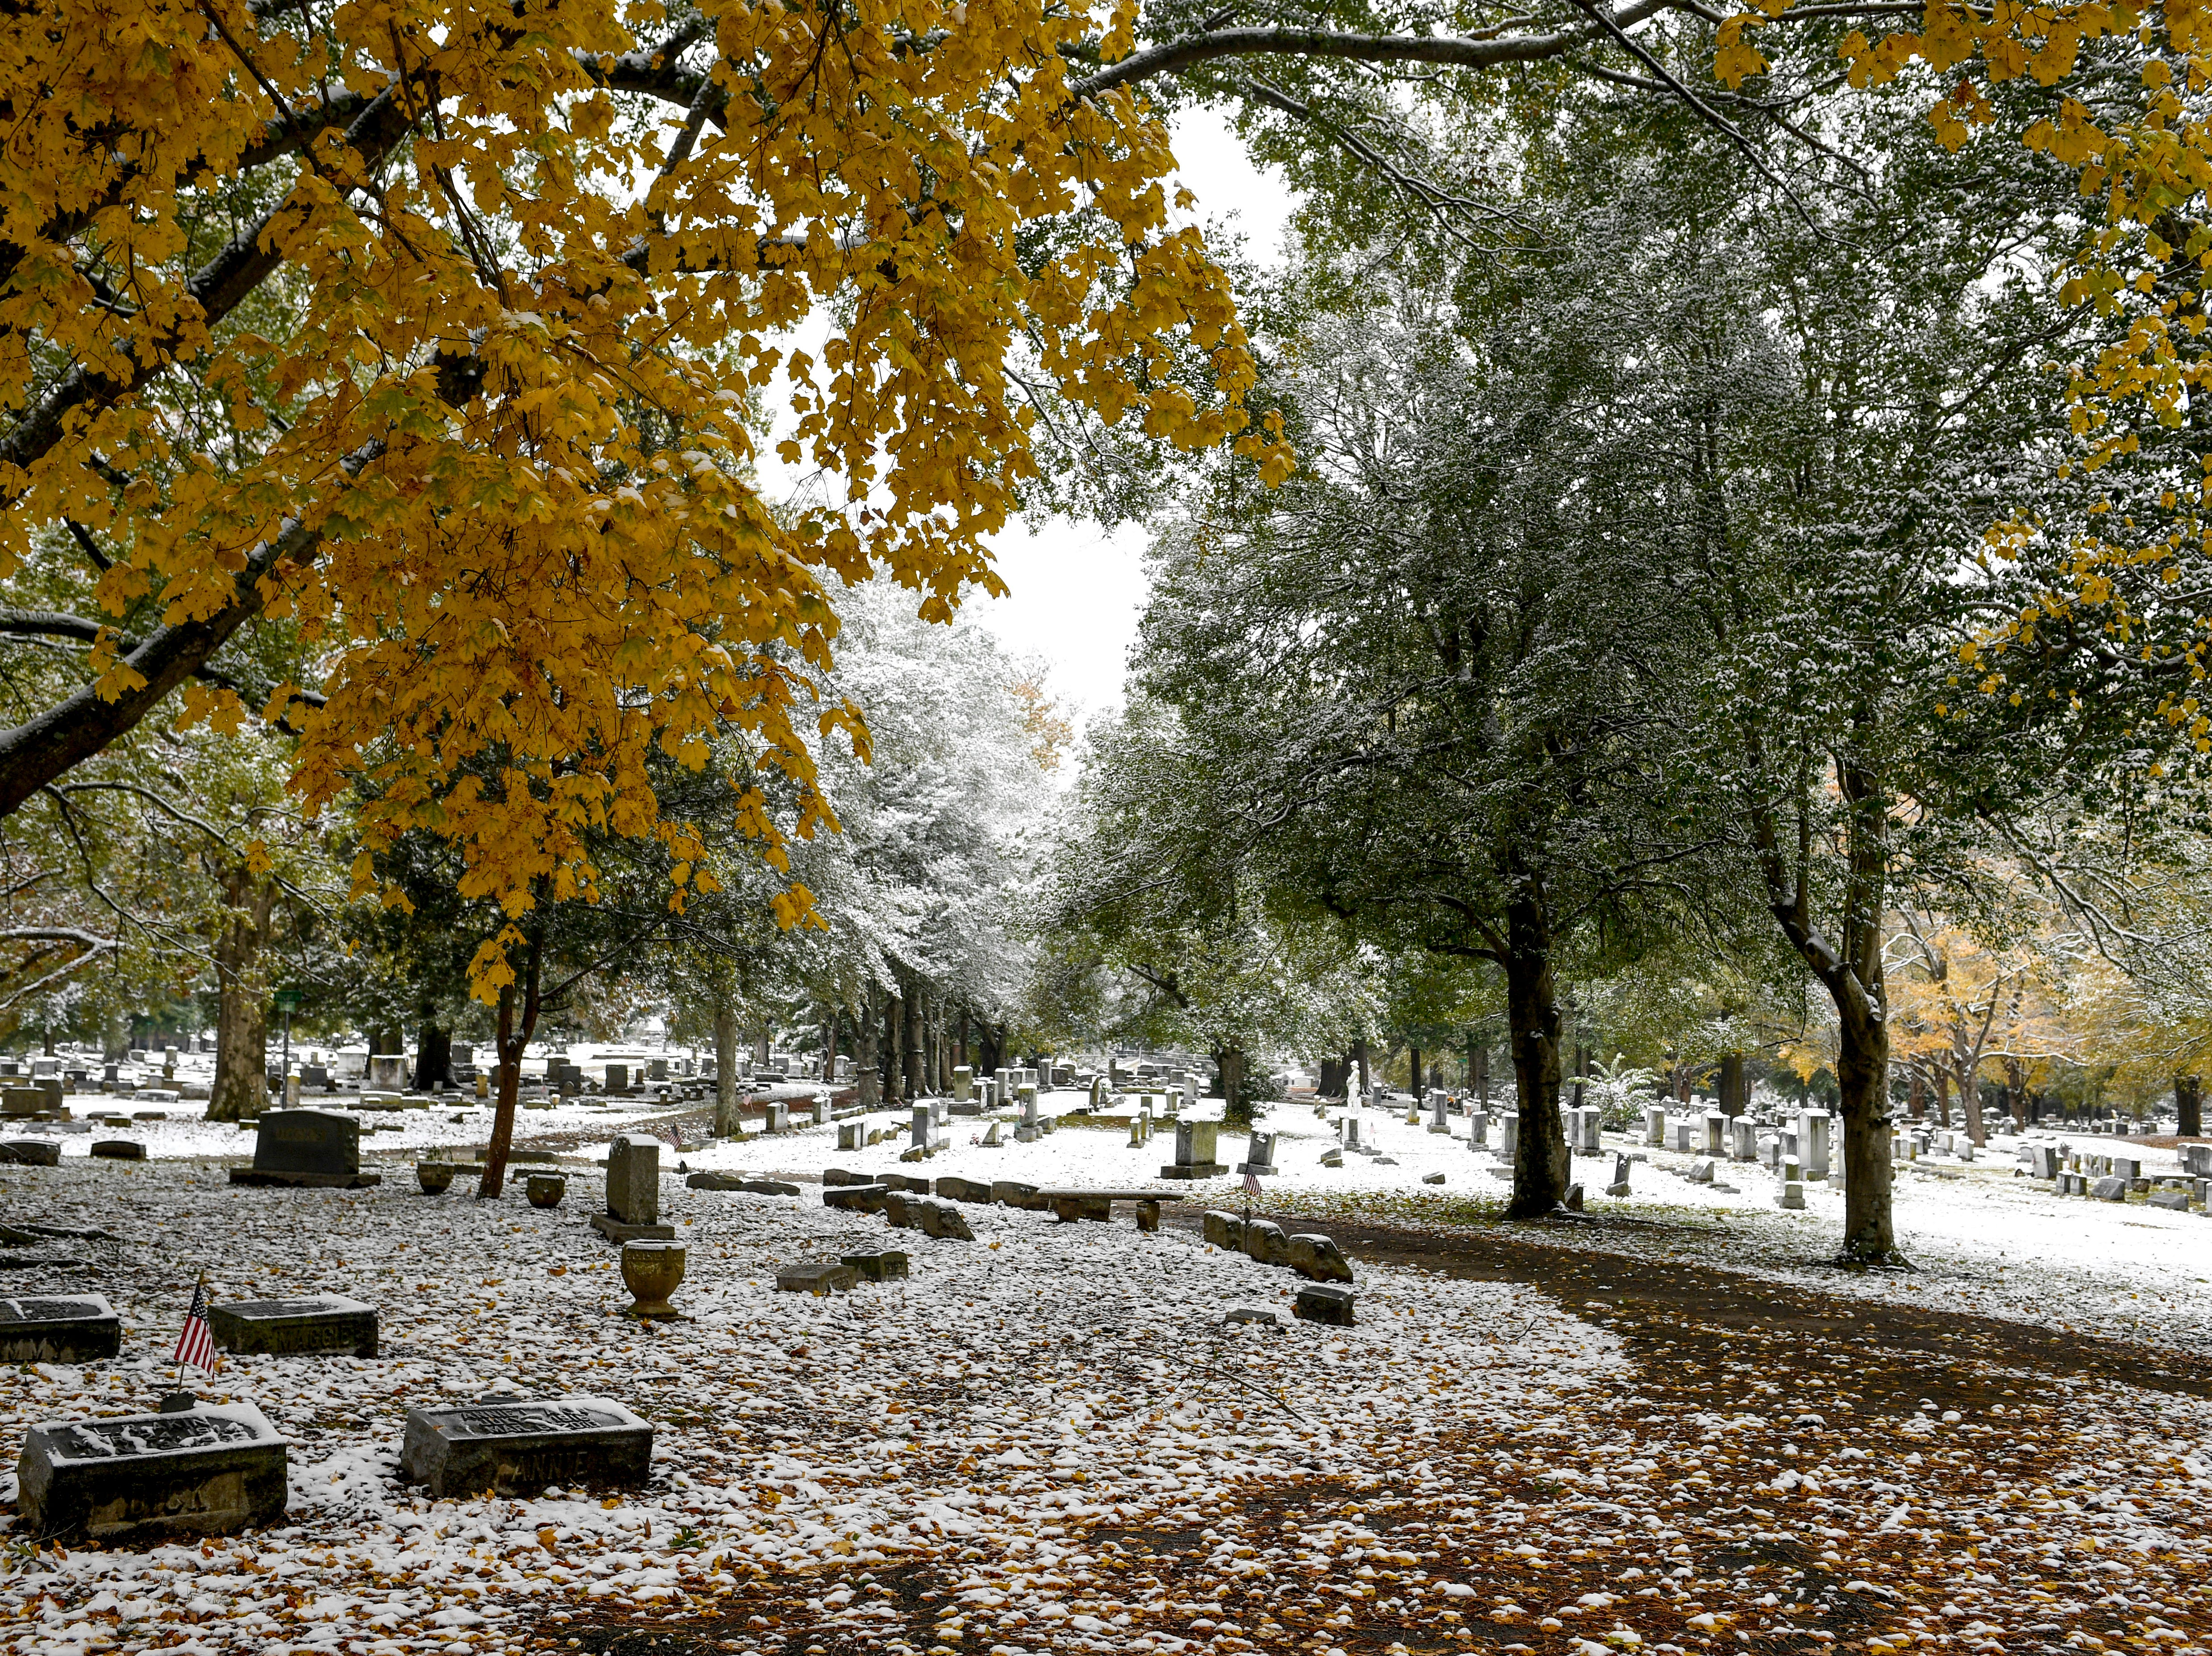 An early snowfall coated scenes of late changing fall leaves, streets, and downtown with powdery snow in Jackson, Tenn., on Thursday, Nov. 15, 2018.